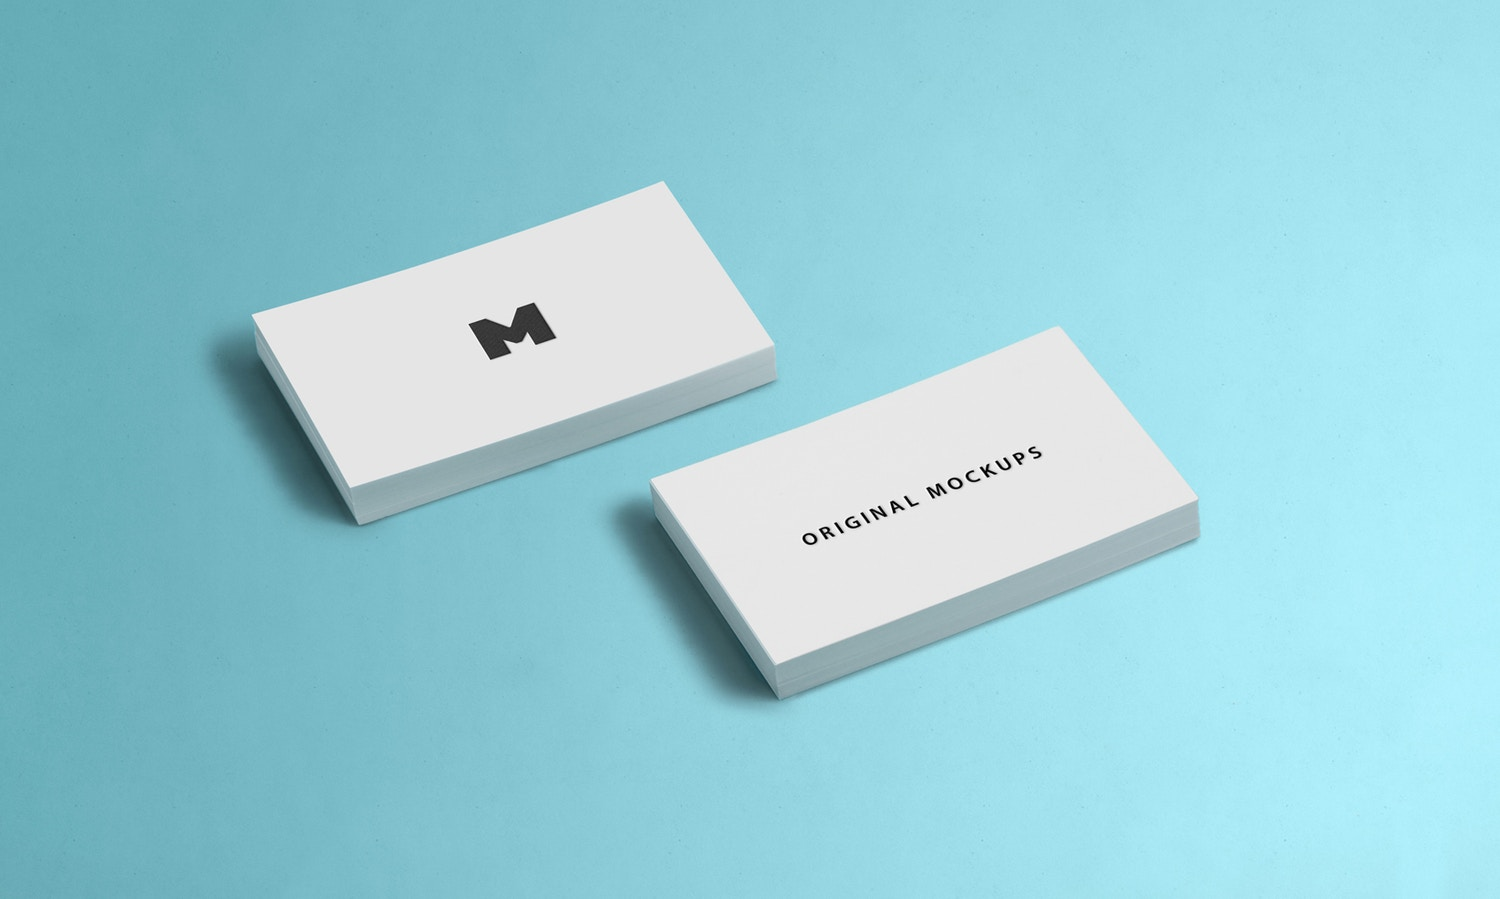 business card mockup 03 original mockups